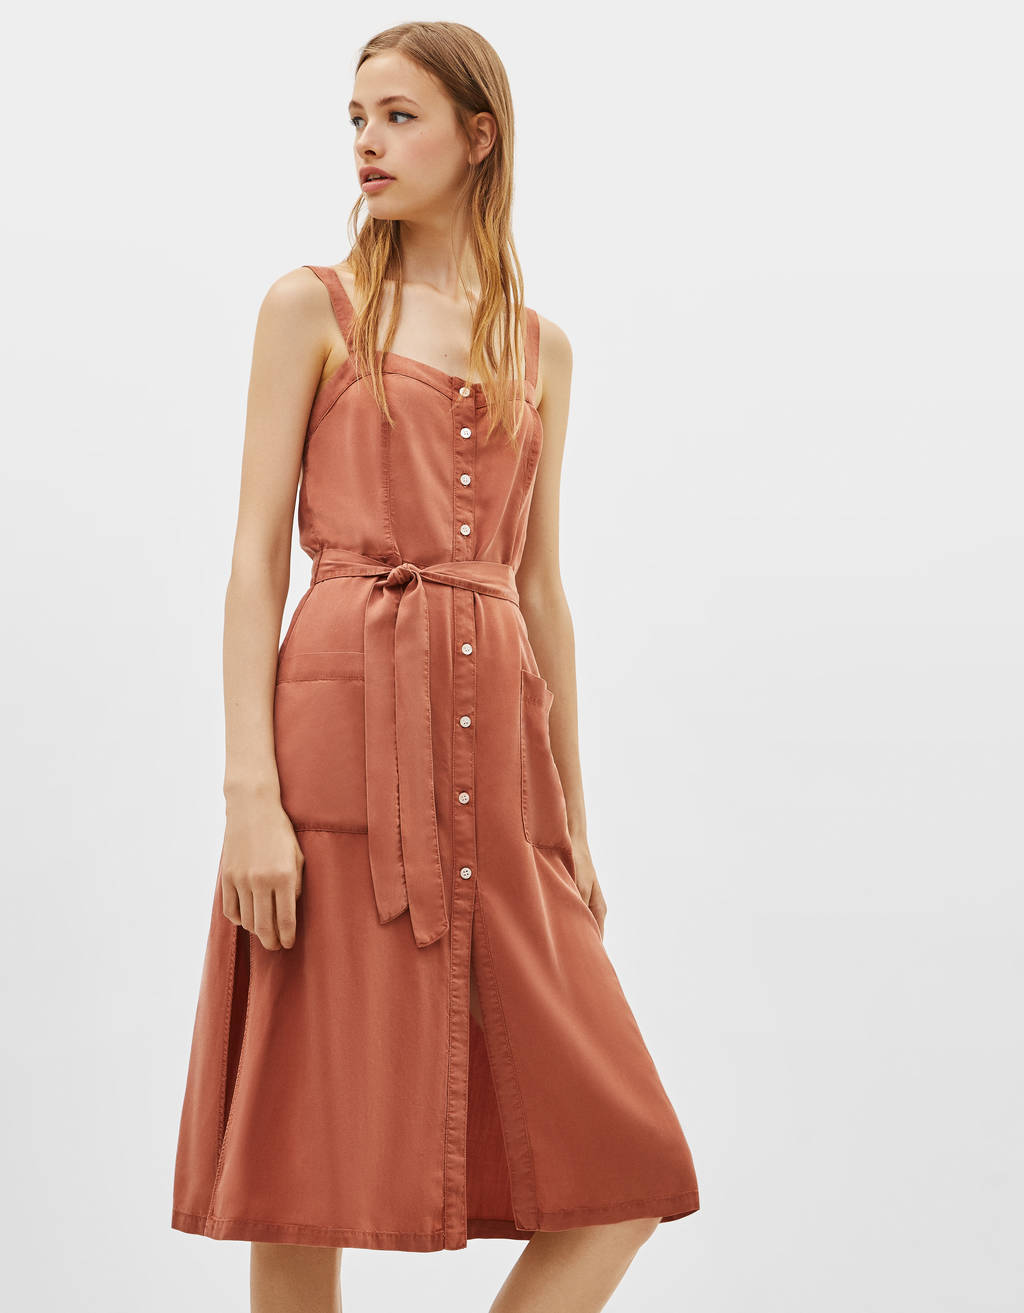 Tencel® dress with tied detail